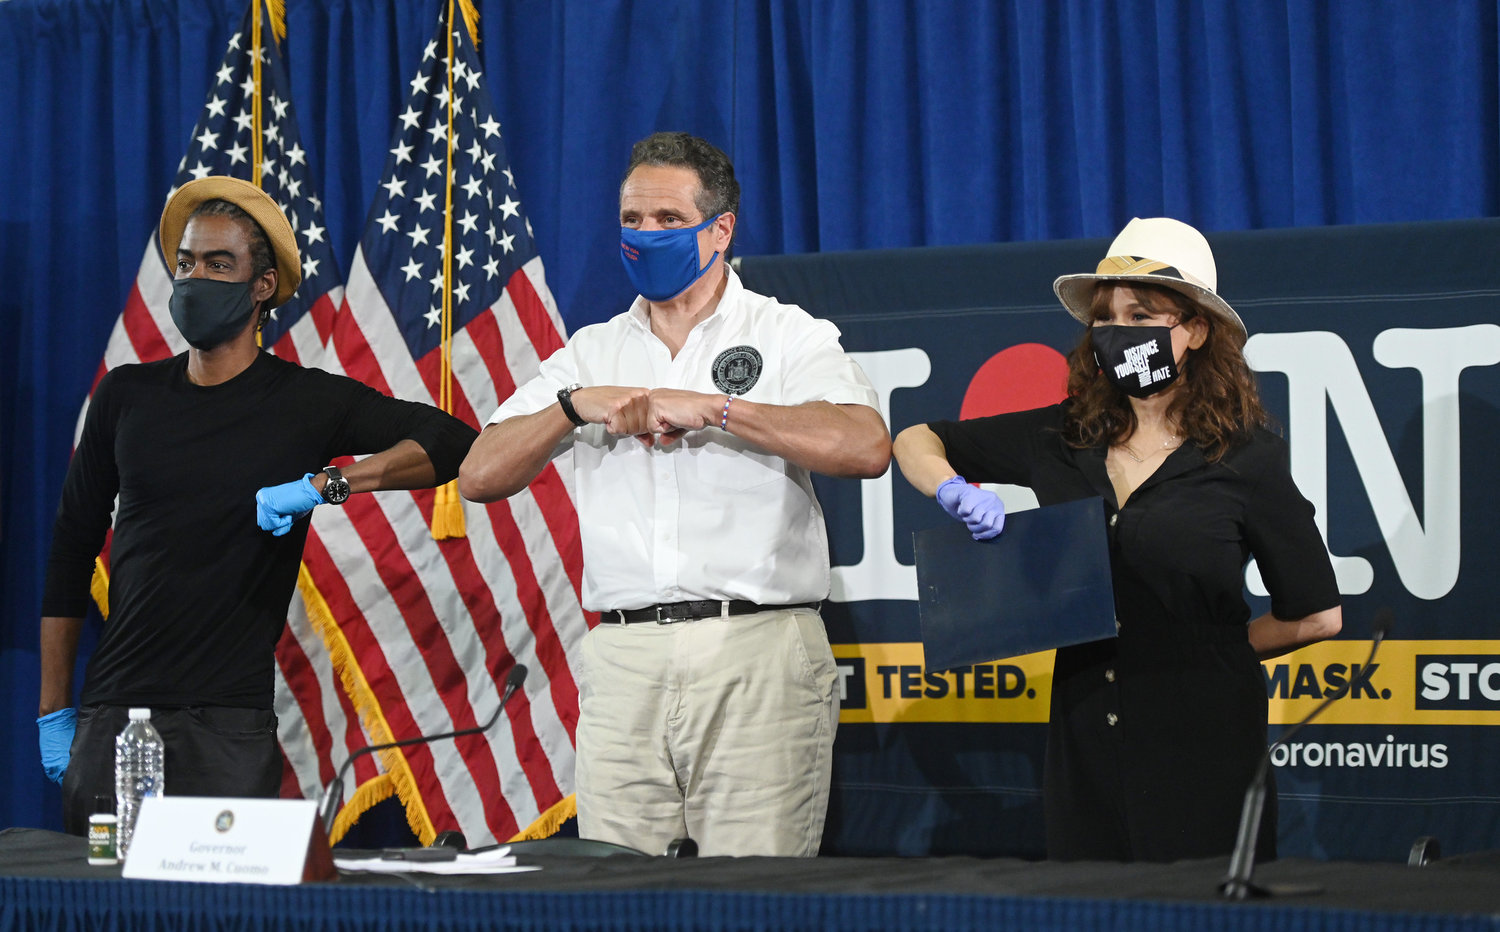 Comedian Chris Rock and actress Rosie Perez joined Gov. Andrew Cuomo in Brooklyn on Thursday for his daily coronavirus briefing.